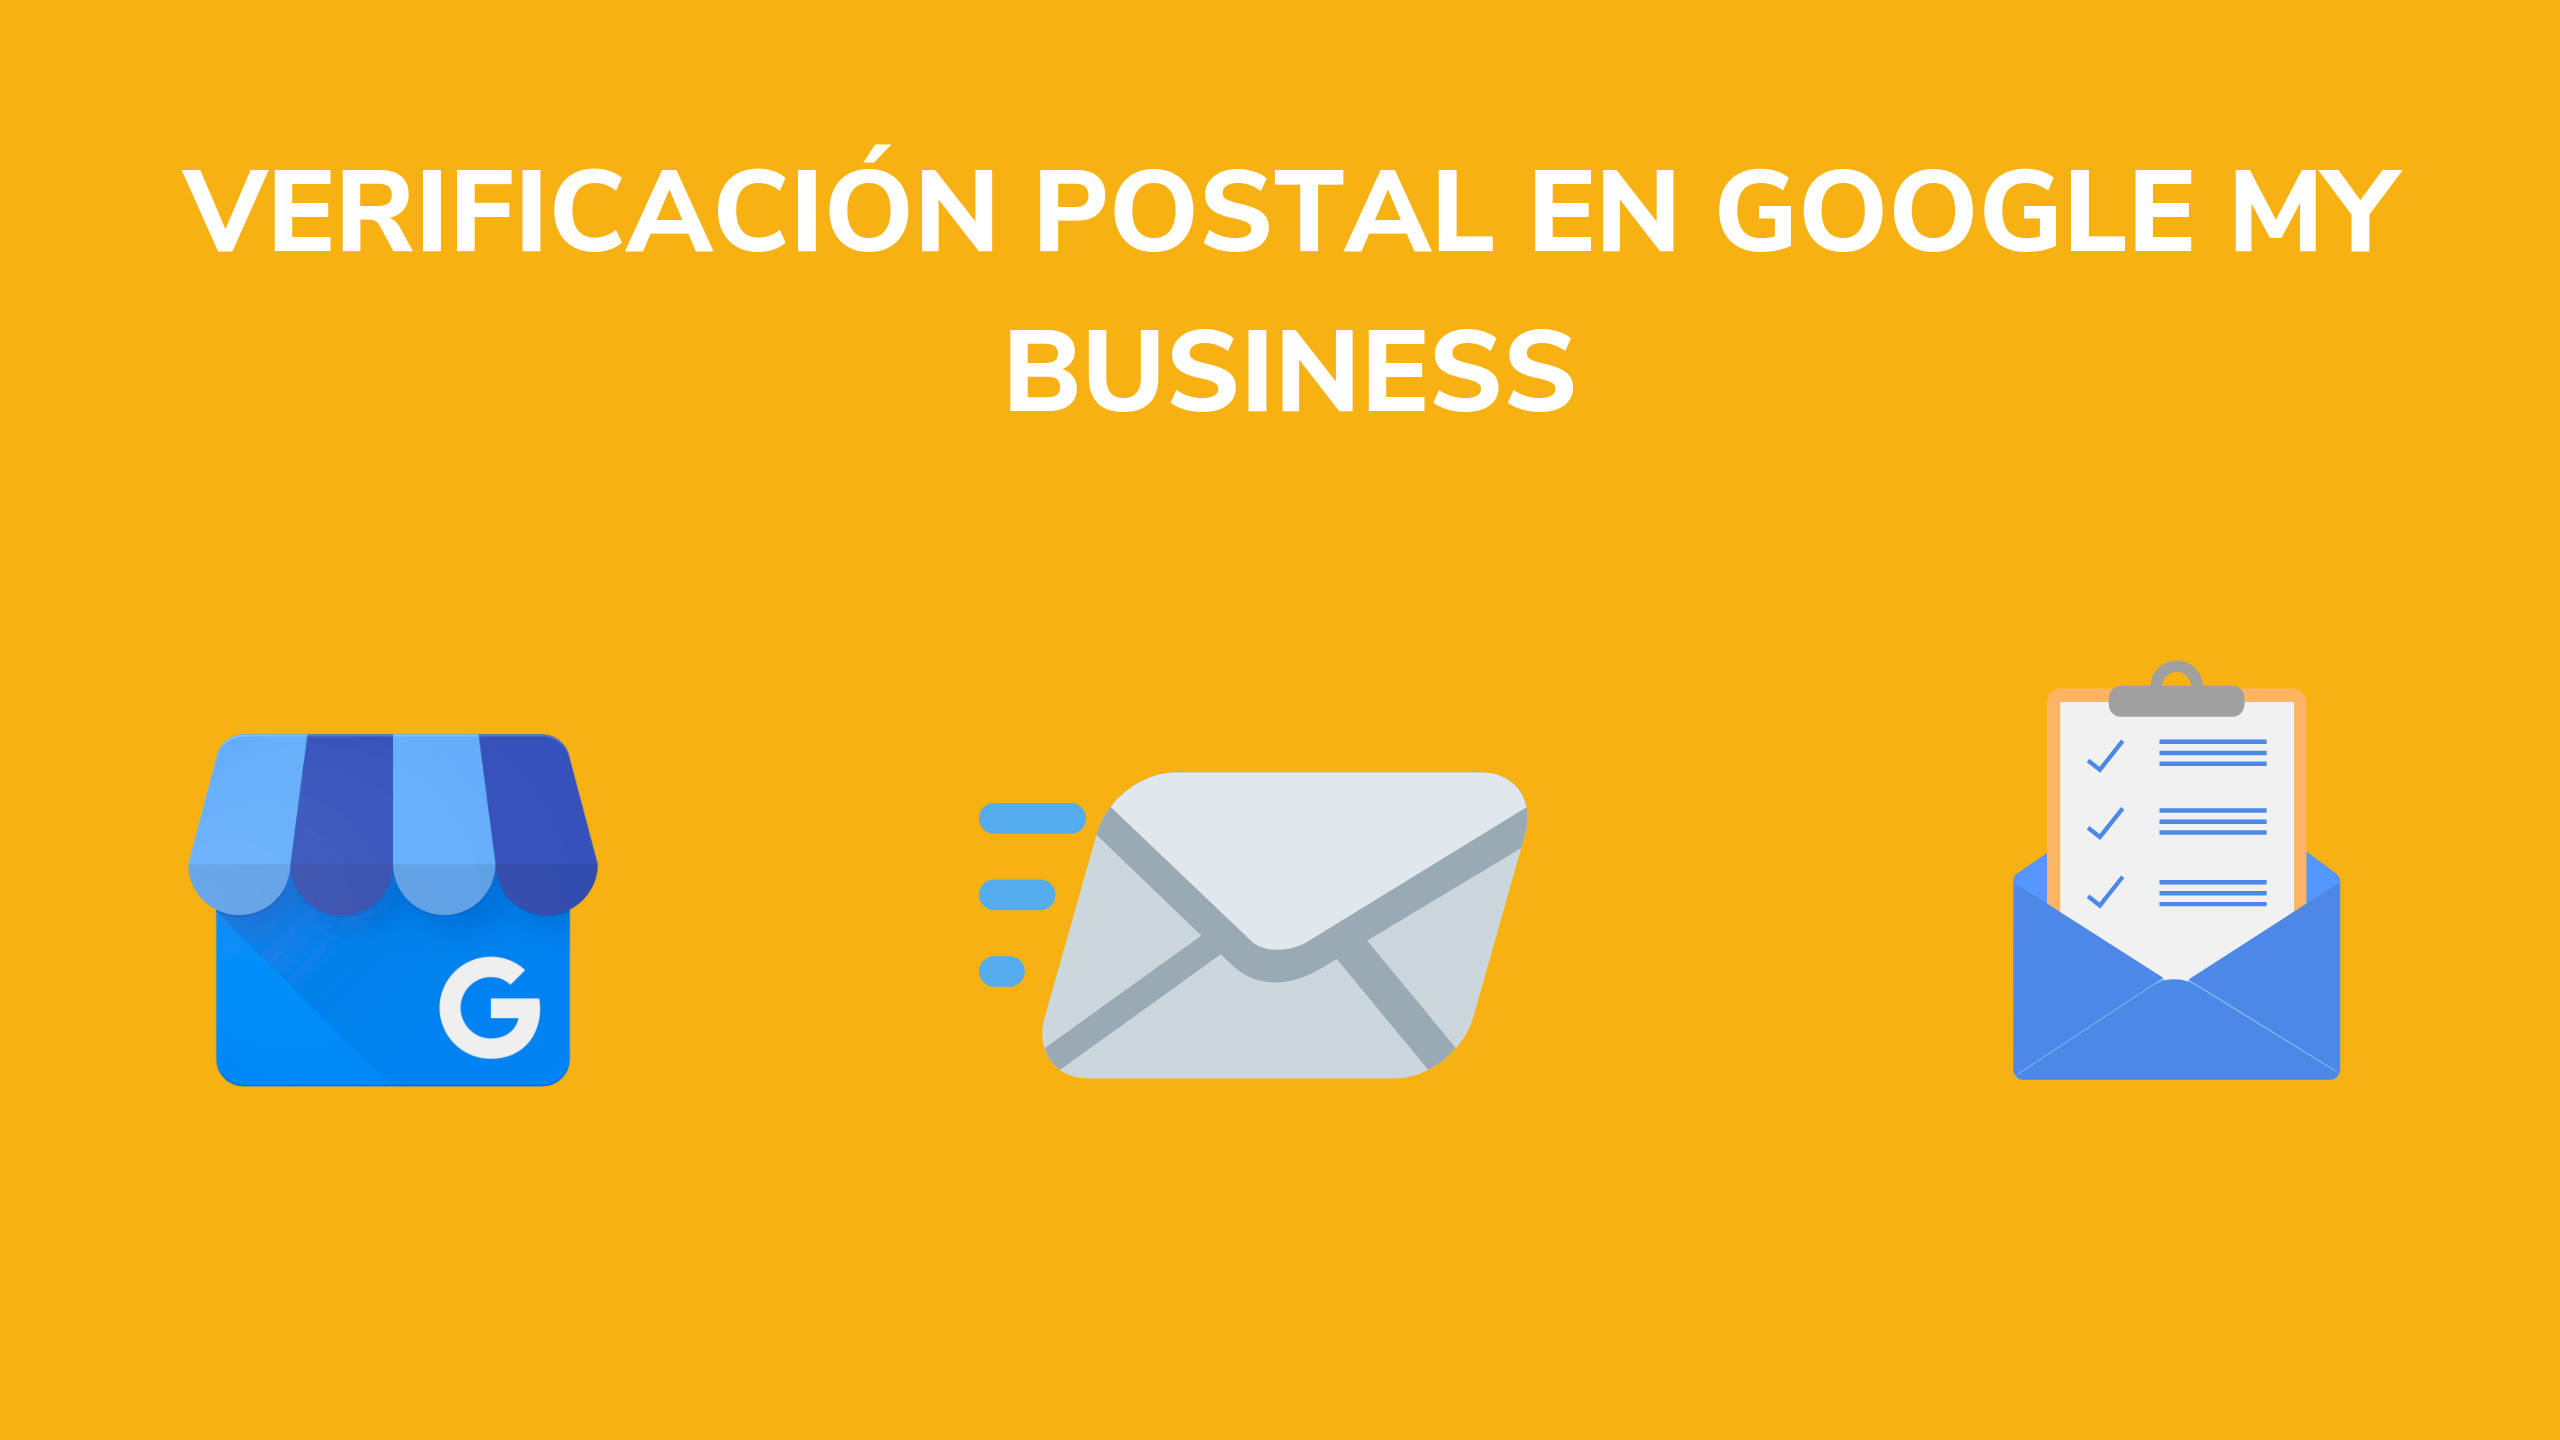 Google My Business: No ha llegado mi carta de verificación